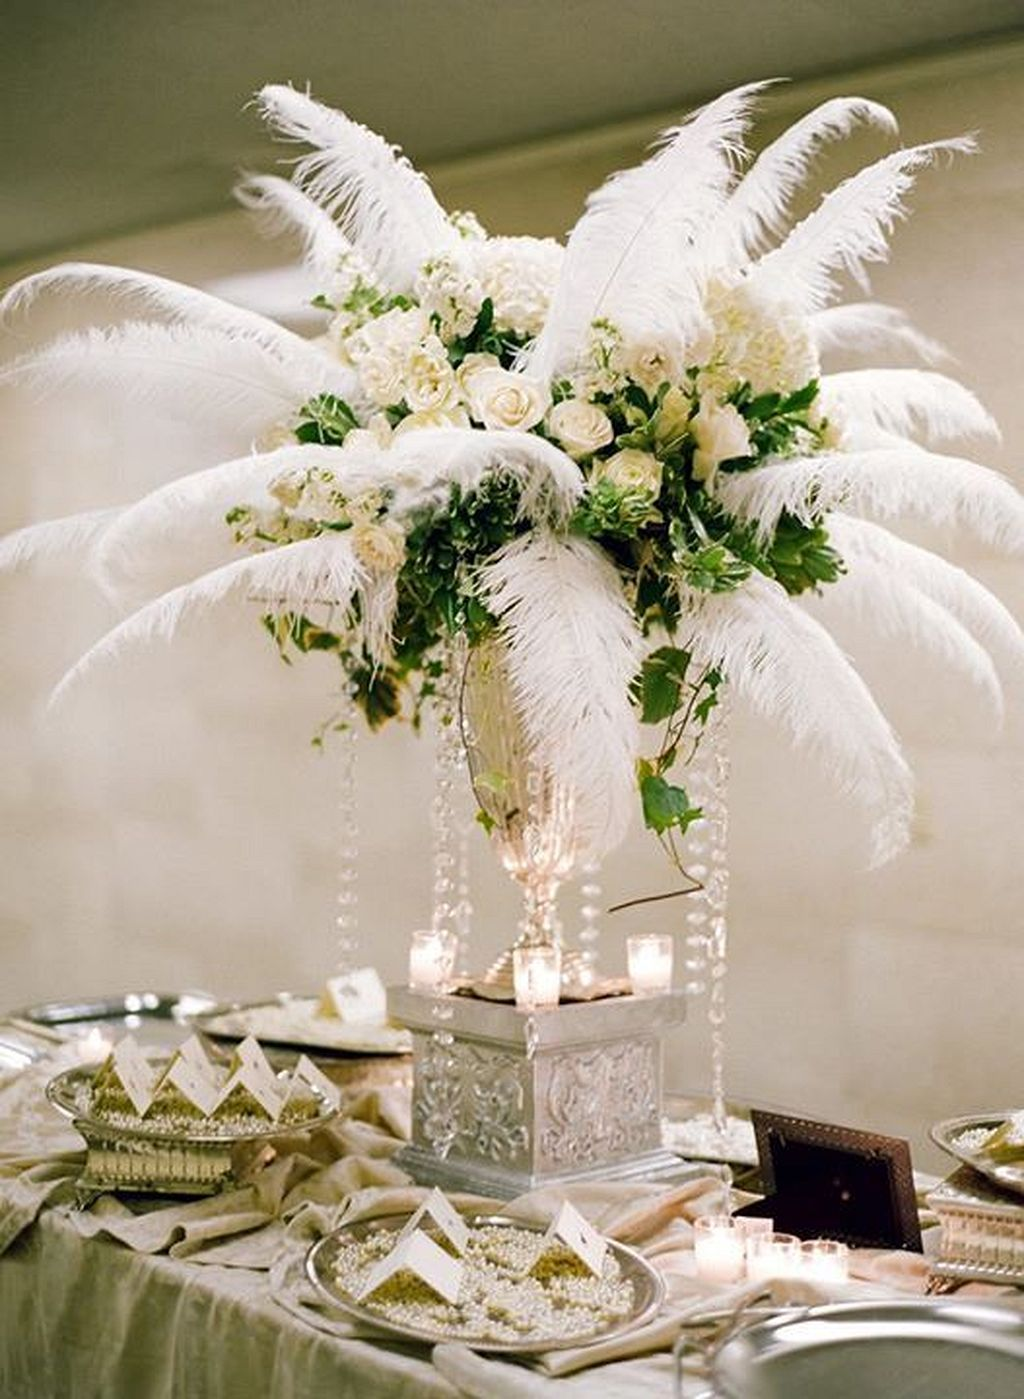 40 Great Gatsby Wedding Centerpieces Ideas | Pinterest | Gatsby ...